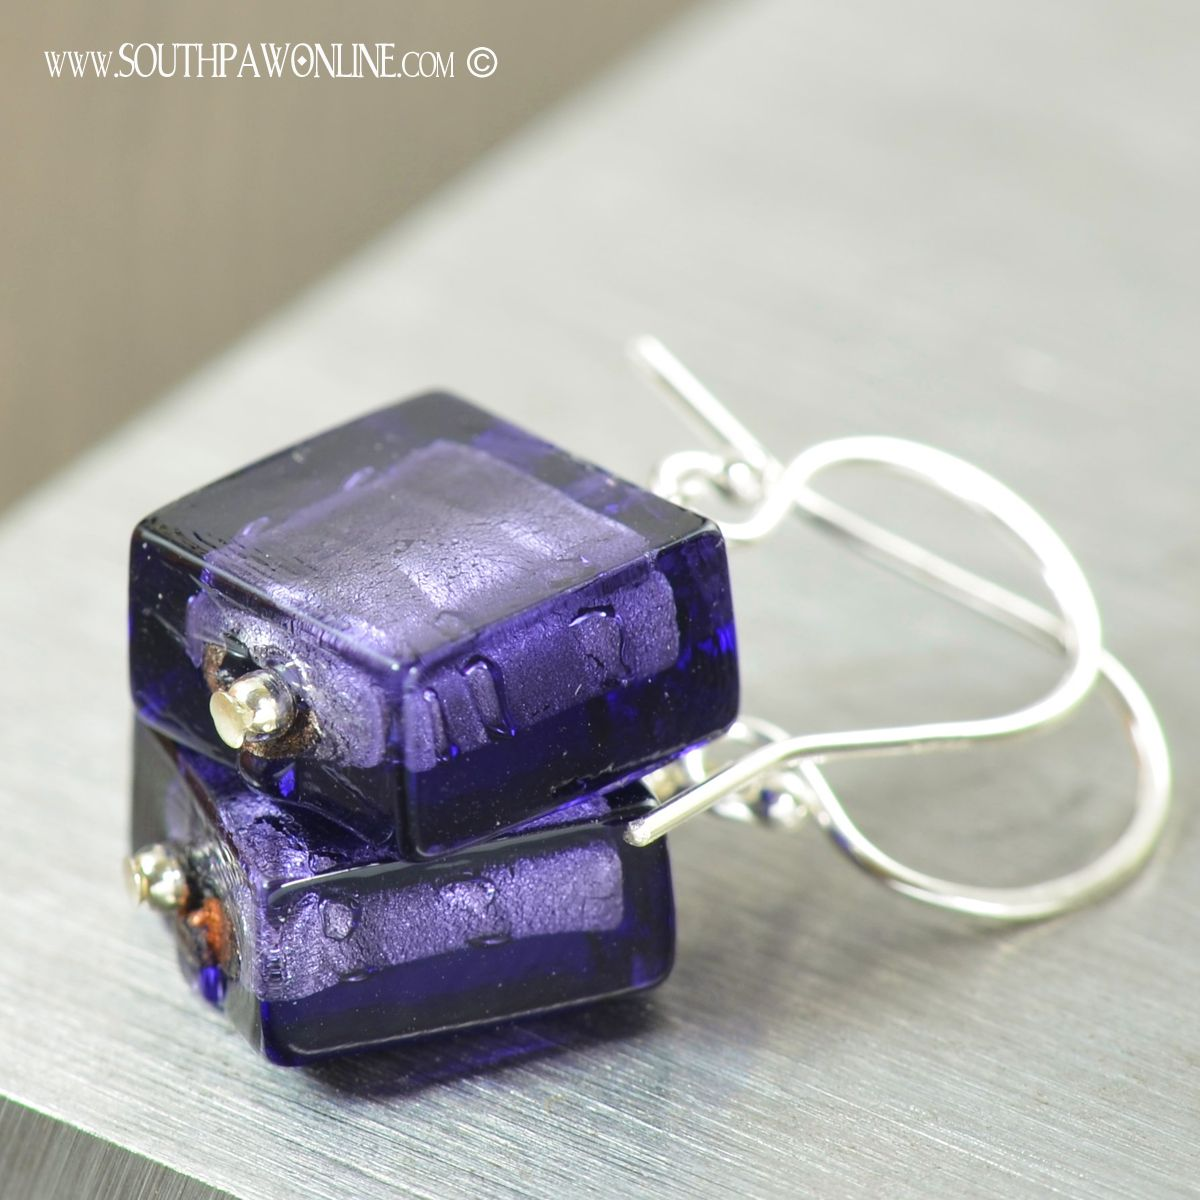 Purple Murano glass earrings with 14K white gold lining